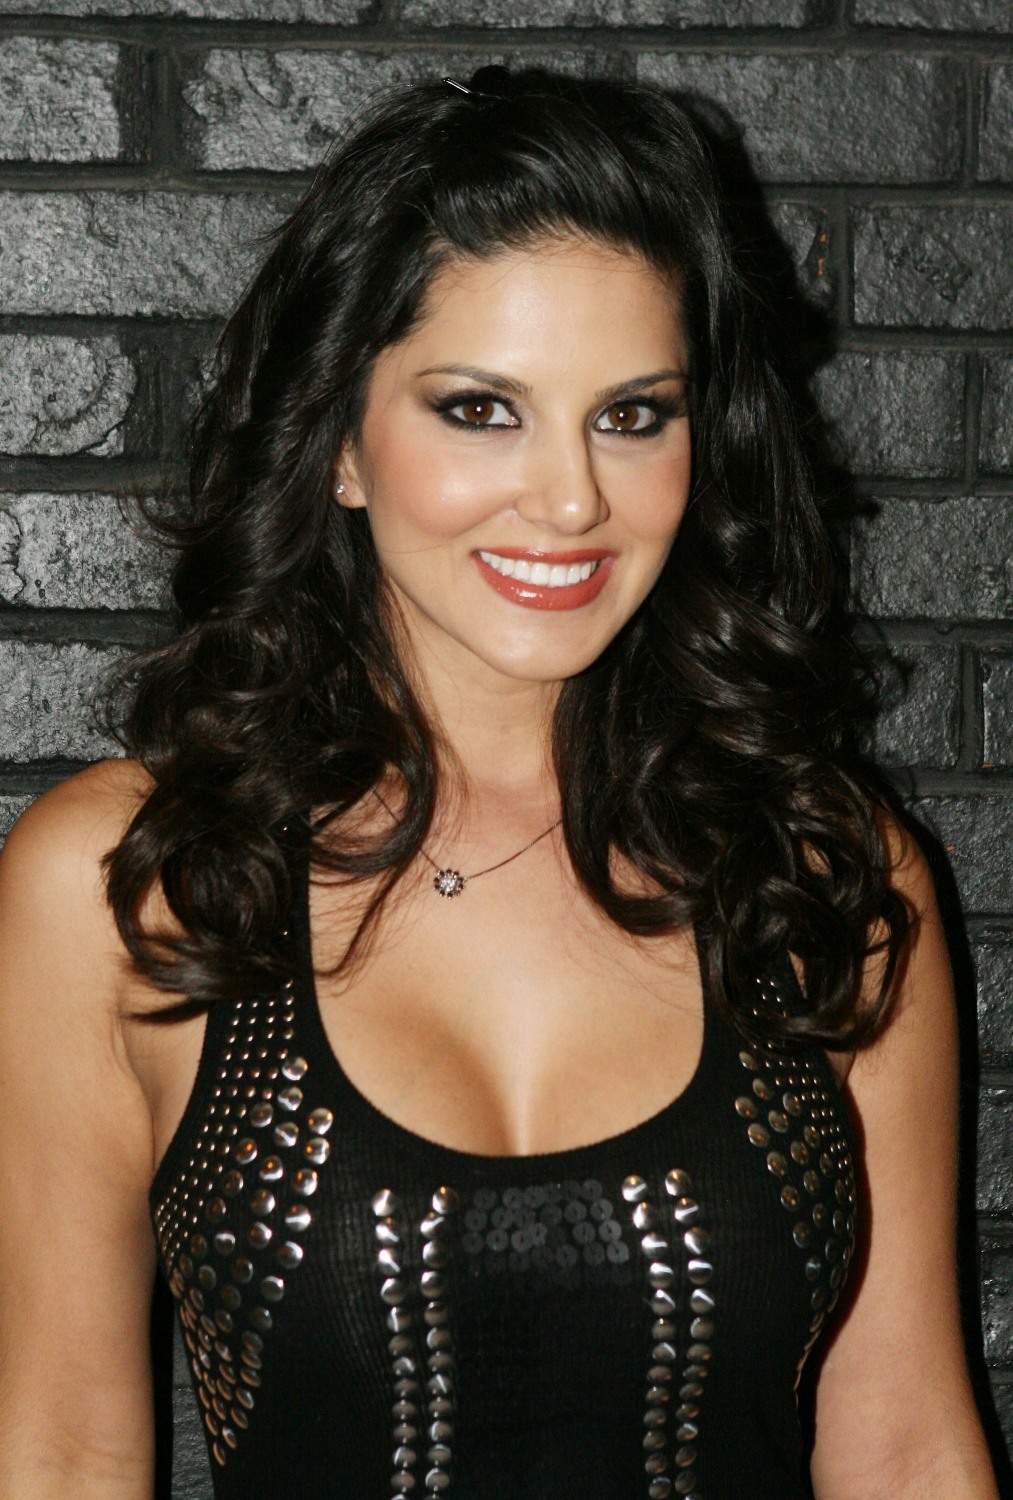 Sunny Leone At Avn Awards 2012 Exclusive Photos-6293